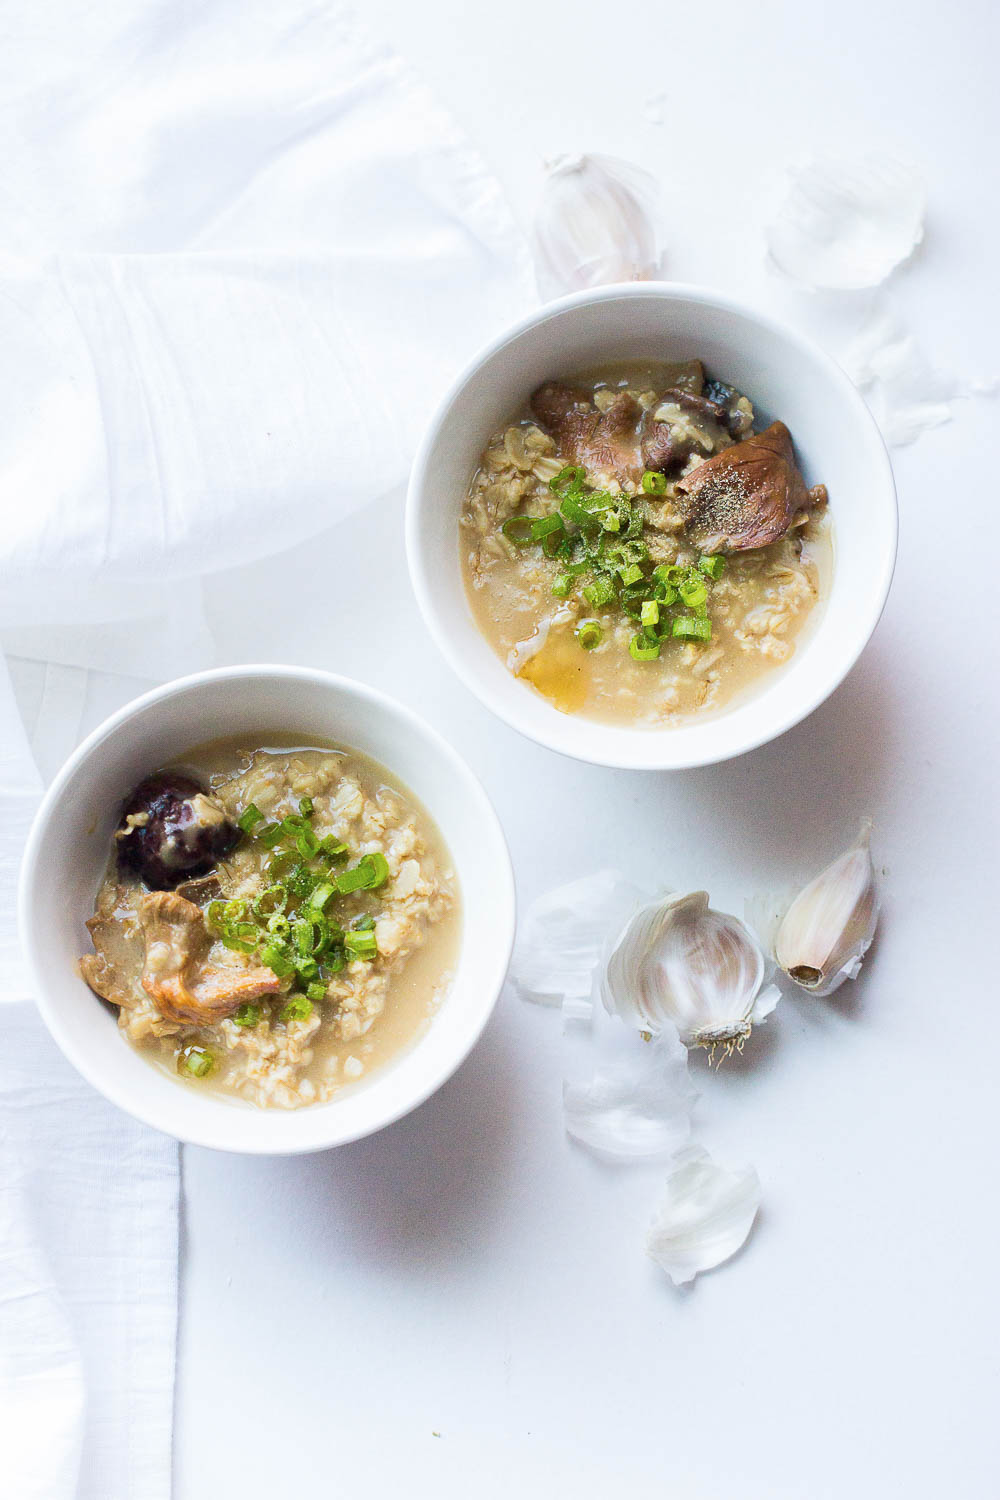 Winter comfort food that is healthy and satisfying - Mushroom Ginger Oatmeal Congee. This recipe requires minimal preparation and can be ready in less than 20 minutes. Perfect for cold & flu season!